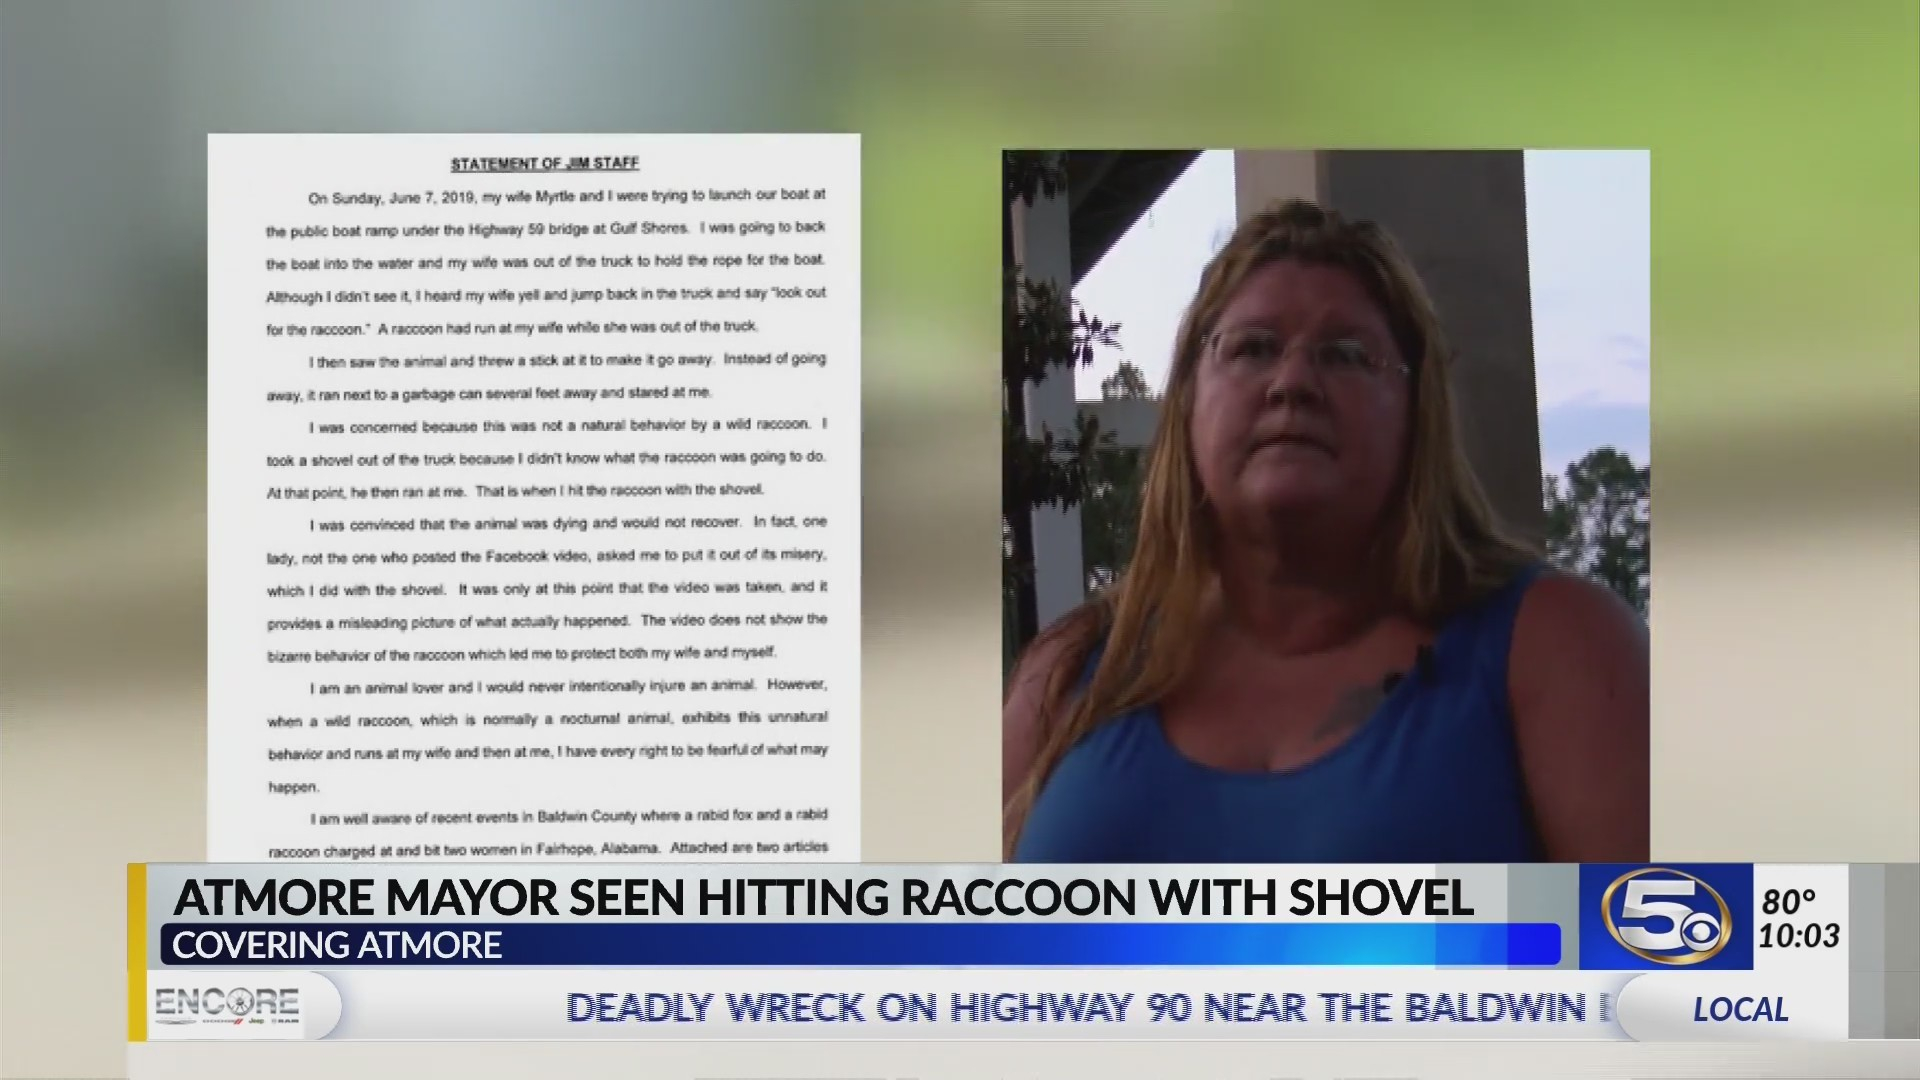 Raccoon beating: Video shows Atmore mayor hitting it with a shovel